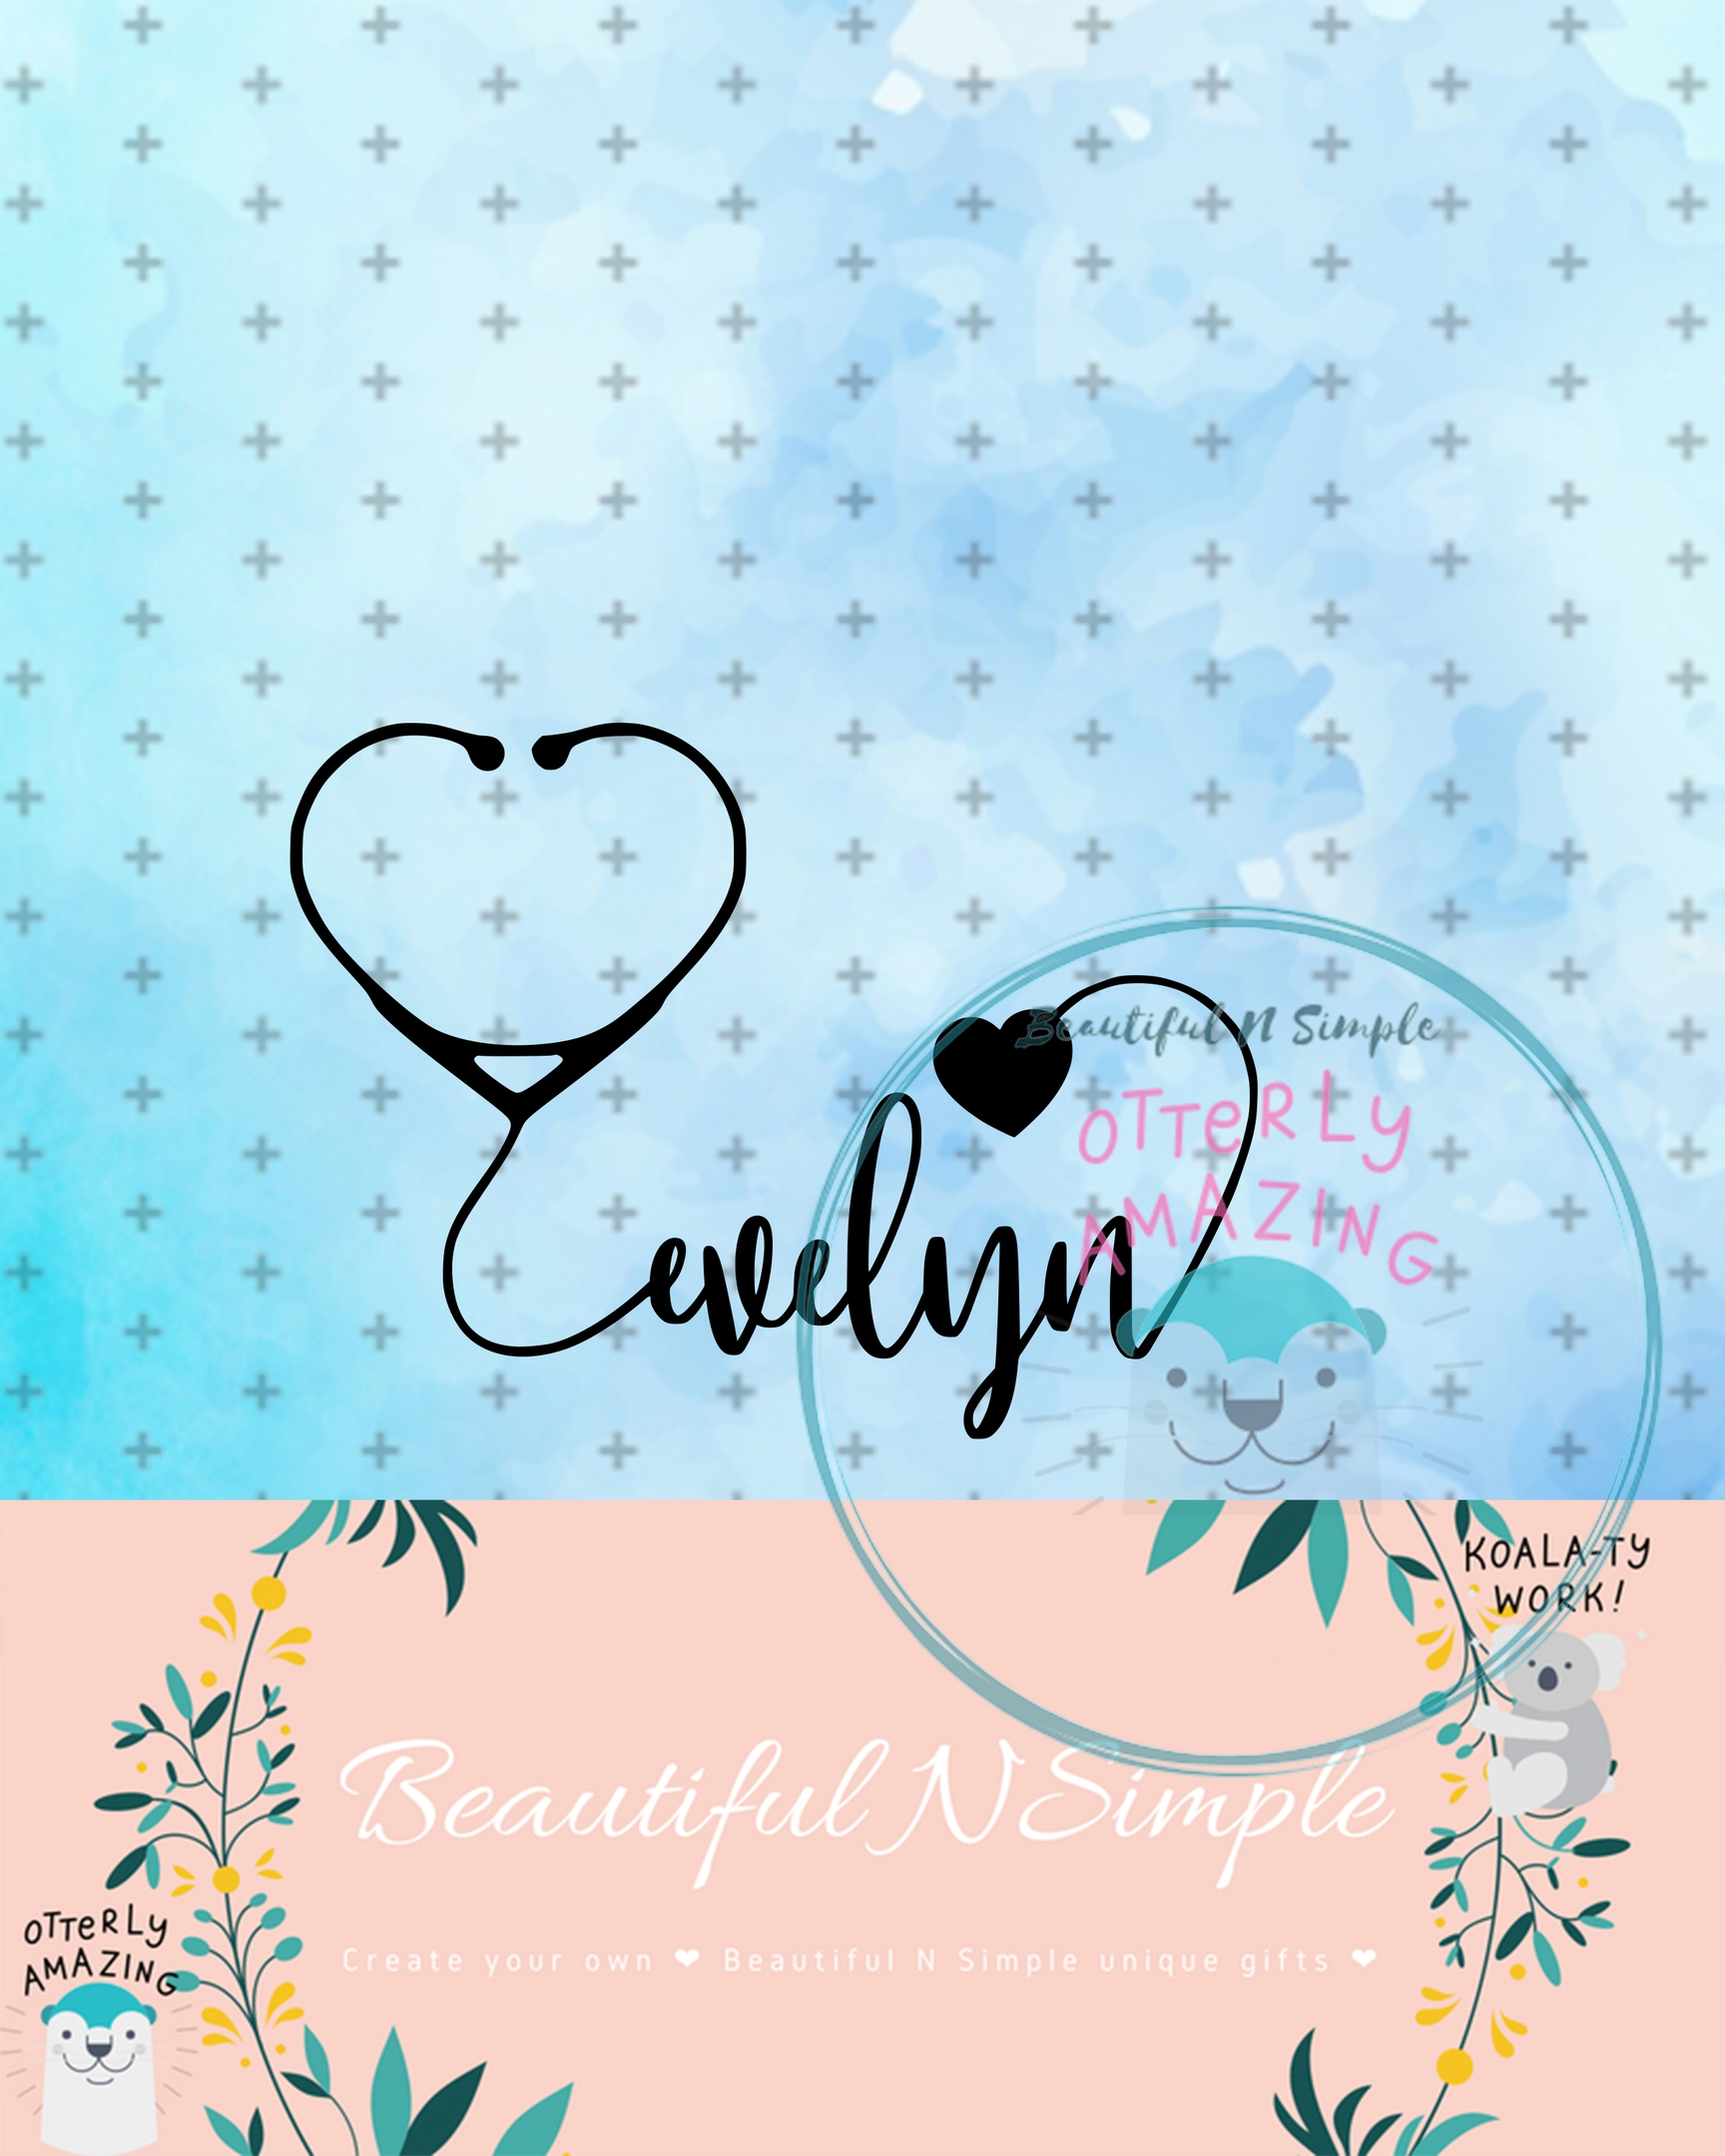 Evelyn Heart Stethoscope Svg And Dxf File Beautifulnsimple